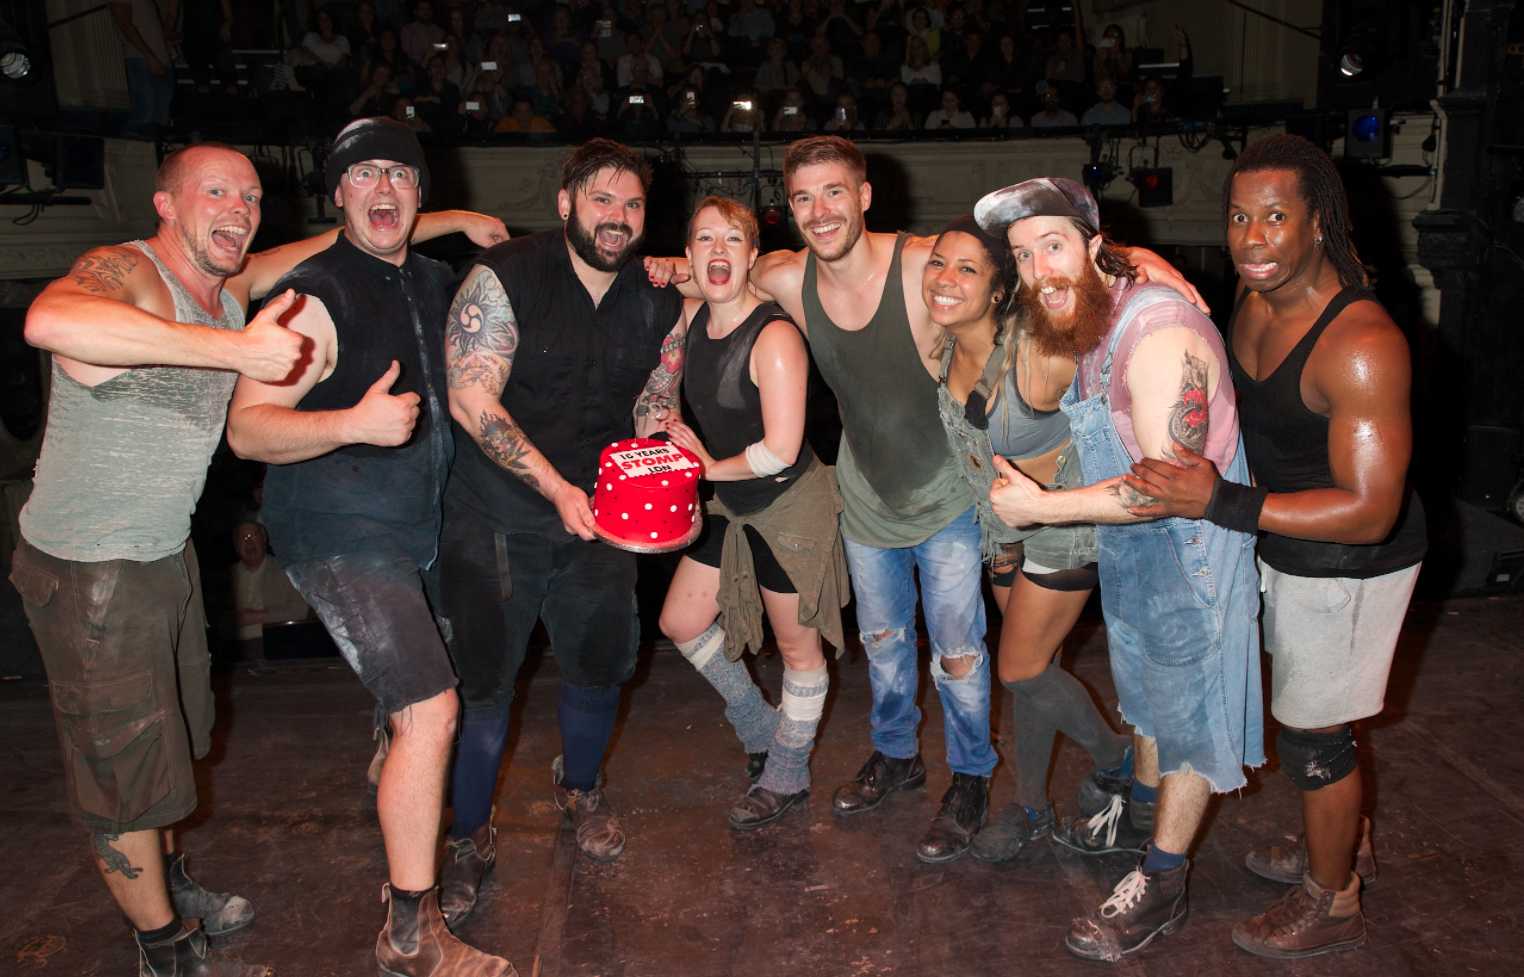 happy-birthday-stomp-15-years-and-going-strong